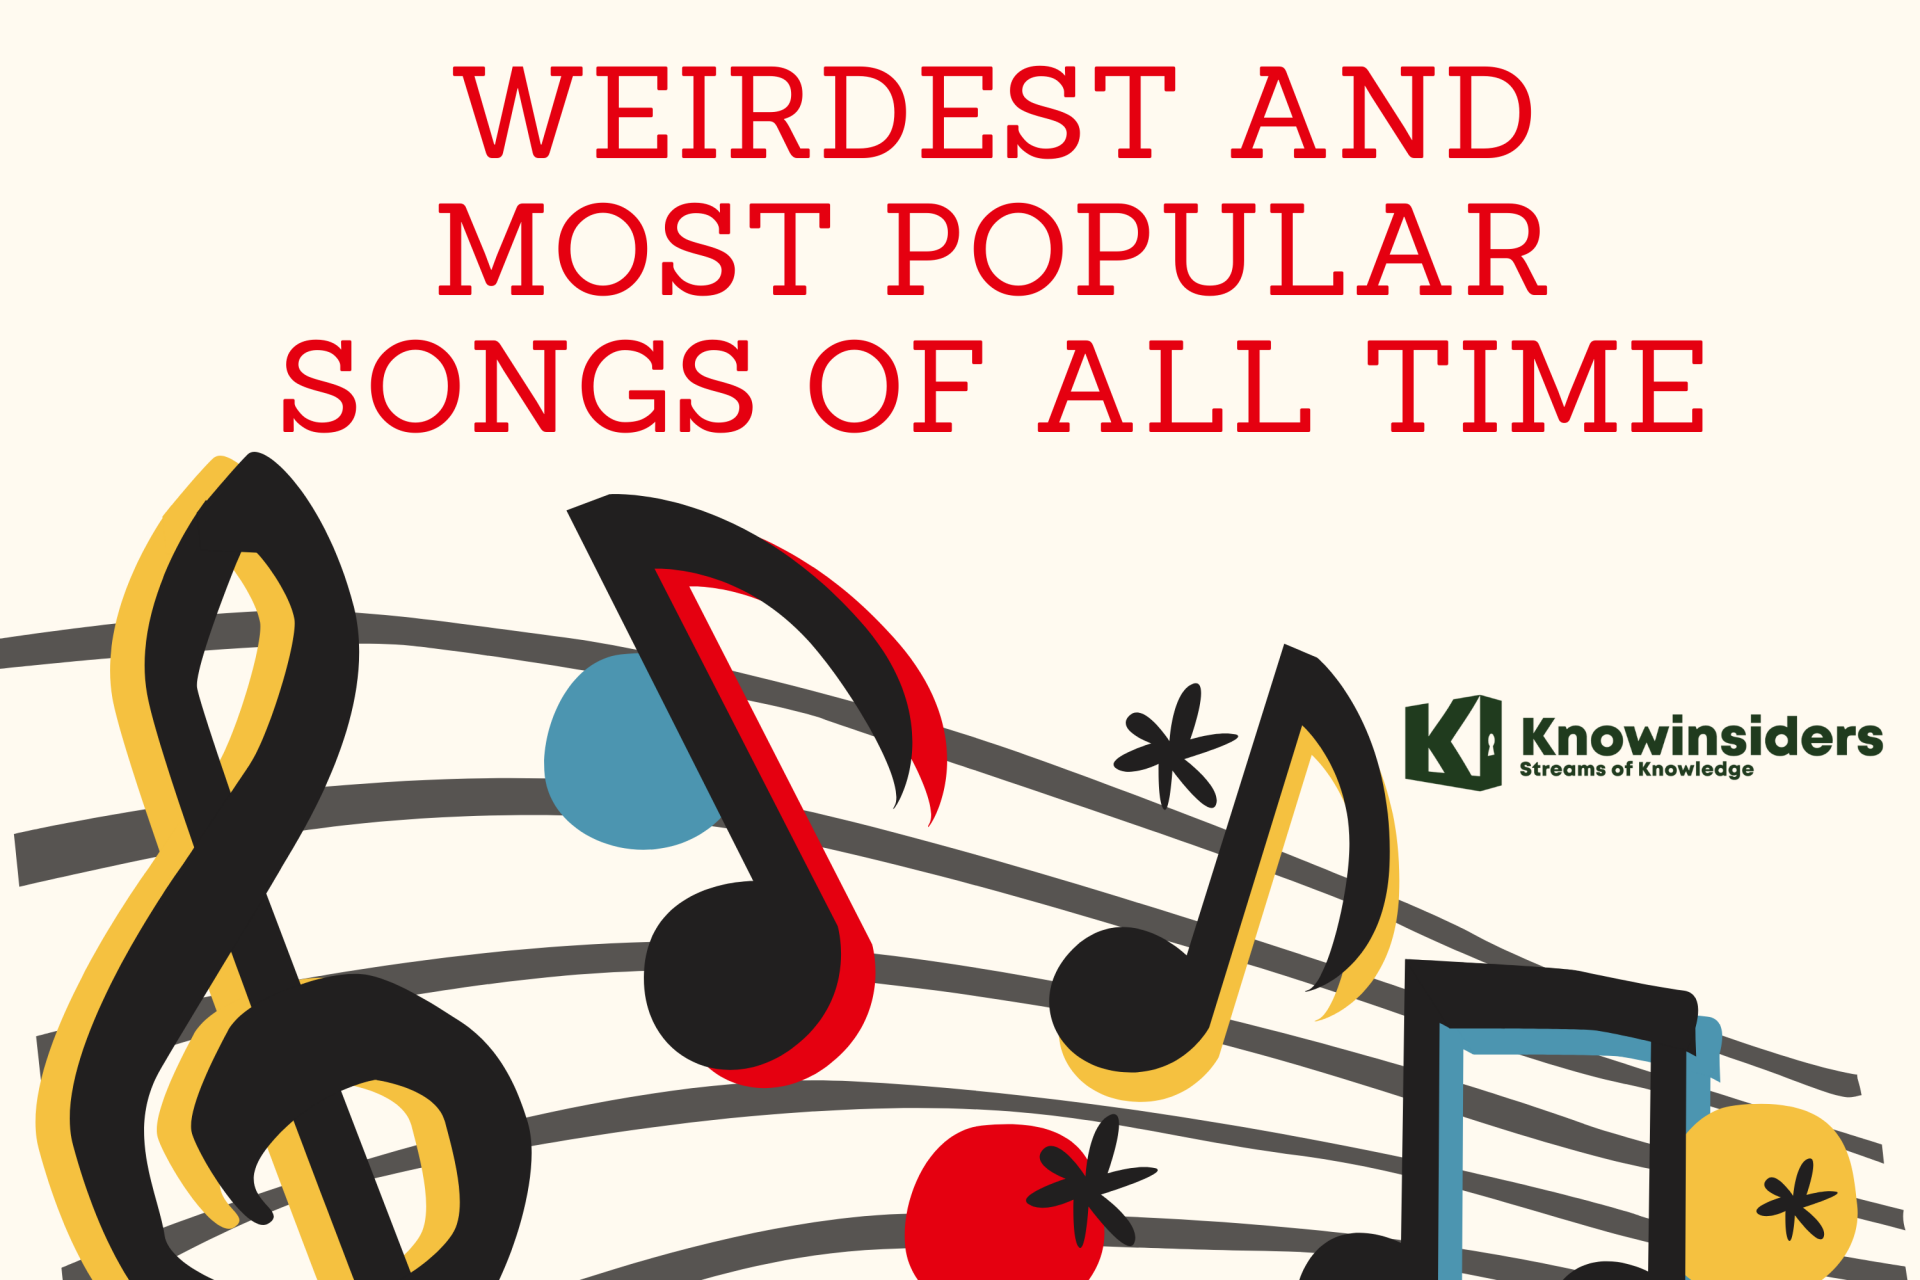 Top 20 Weirdest and Most Popular Songs of All Time